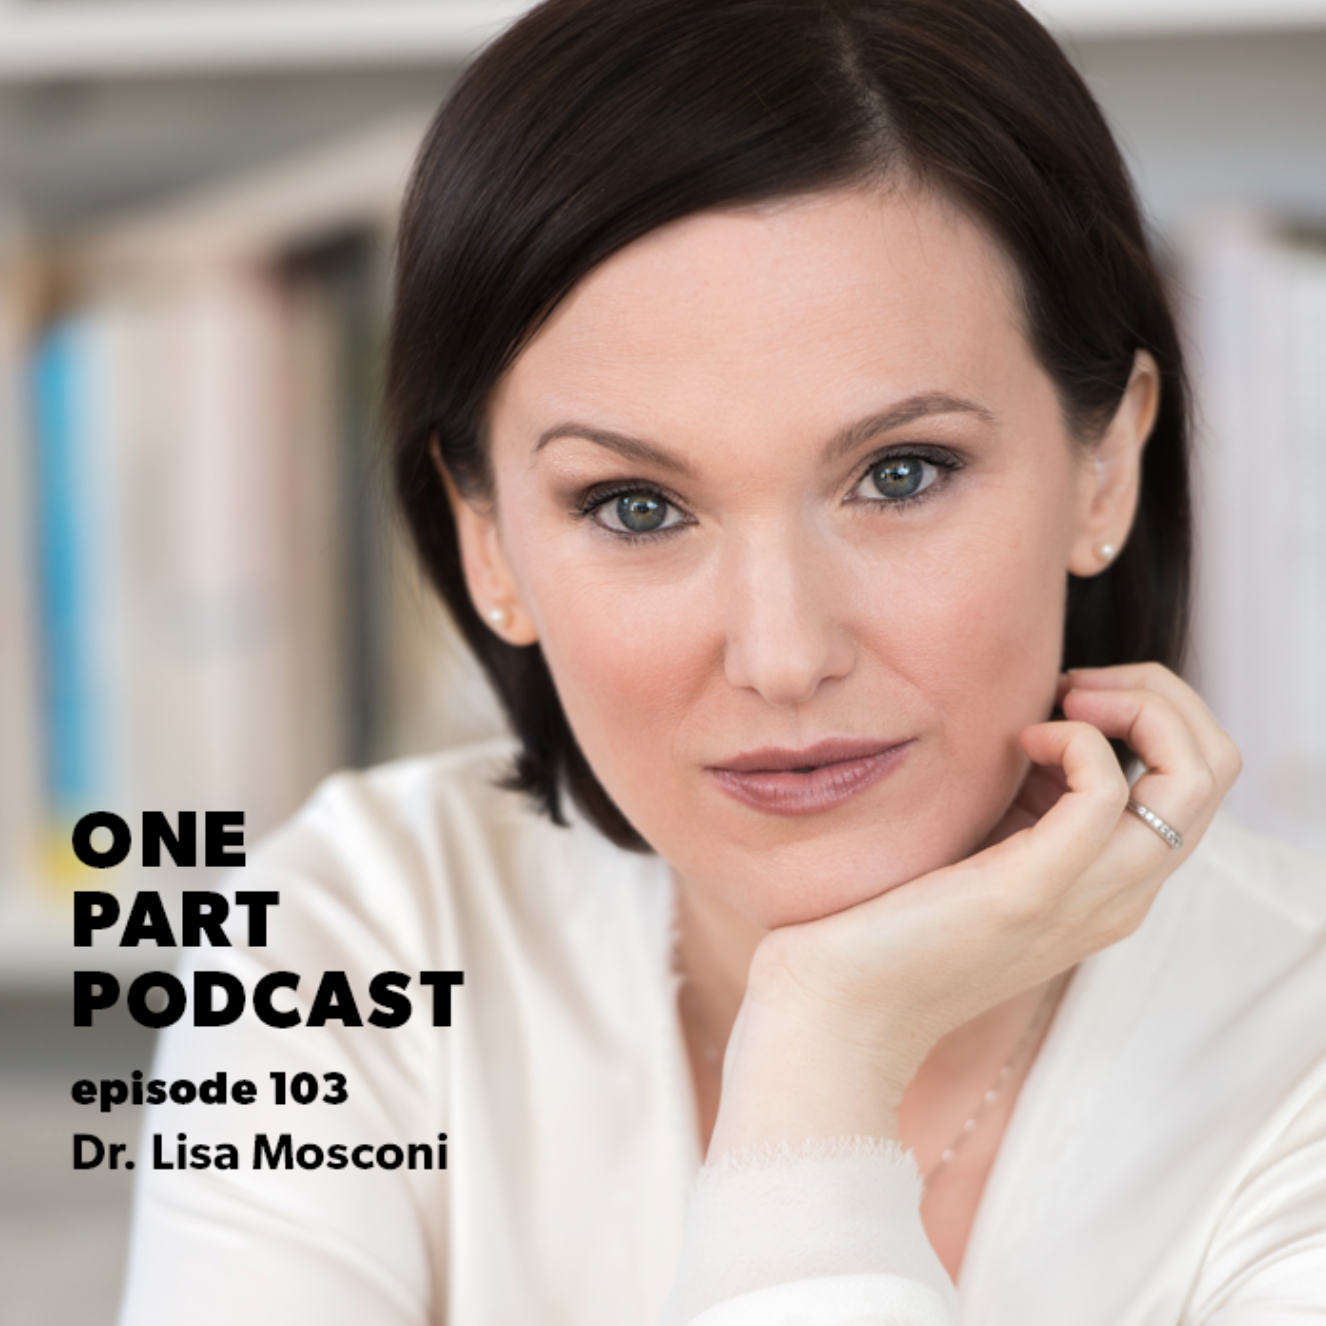 One Part Podcast: Brain Health + Alzheimer's Prevention + Eating for Cognitive power - This week we're talking to Dr. Lisa Mosconi, the author of the new book, Brain Food: The Surprising Of Eating For Cognitive Power. Lisa and Jessica Murnane discuss the the importance of water (in relationship to our brain health), glucose vs. sucrose, Alzheimer's prevention, the Keto diet, and how genes are not our destiny. The podcast is here.